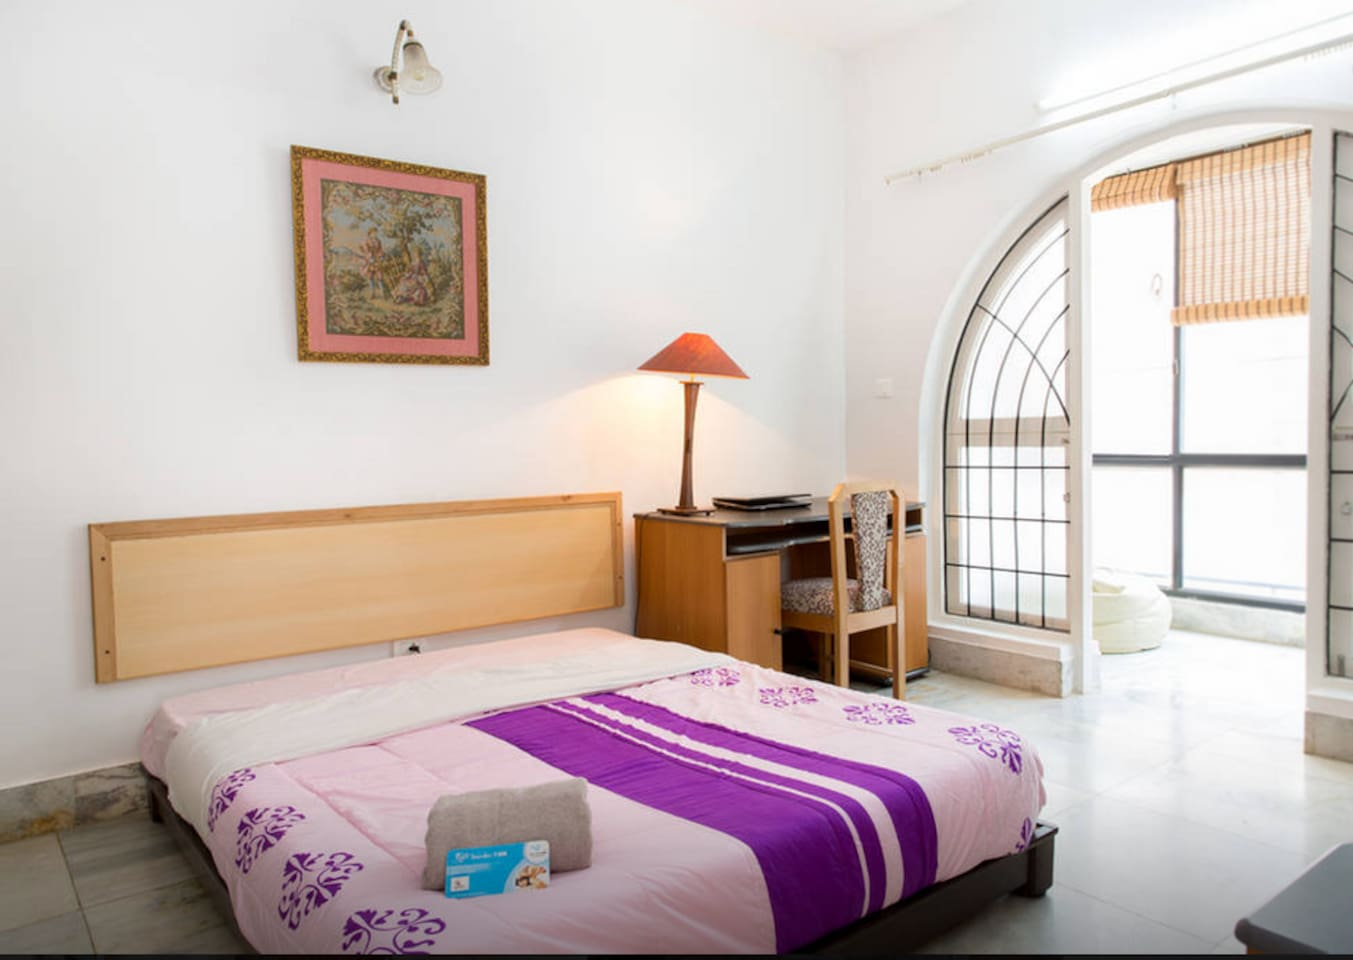 Room views (1) : Spacious, ventilated and cozy rooms , with attached bath, TV  & balcony space in room..